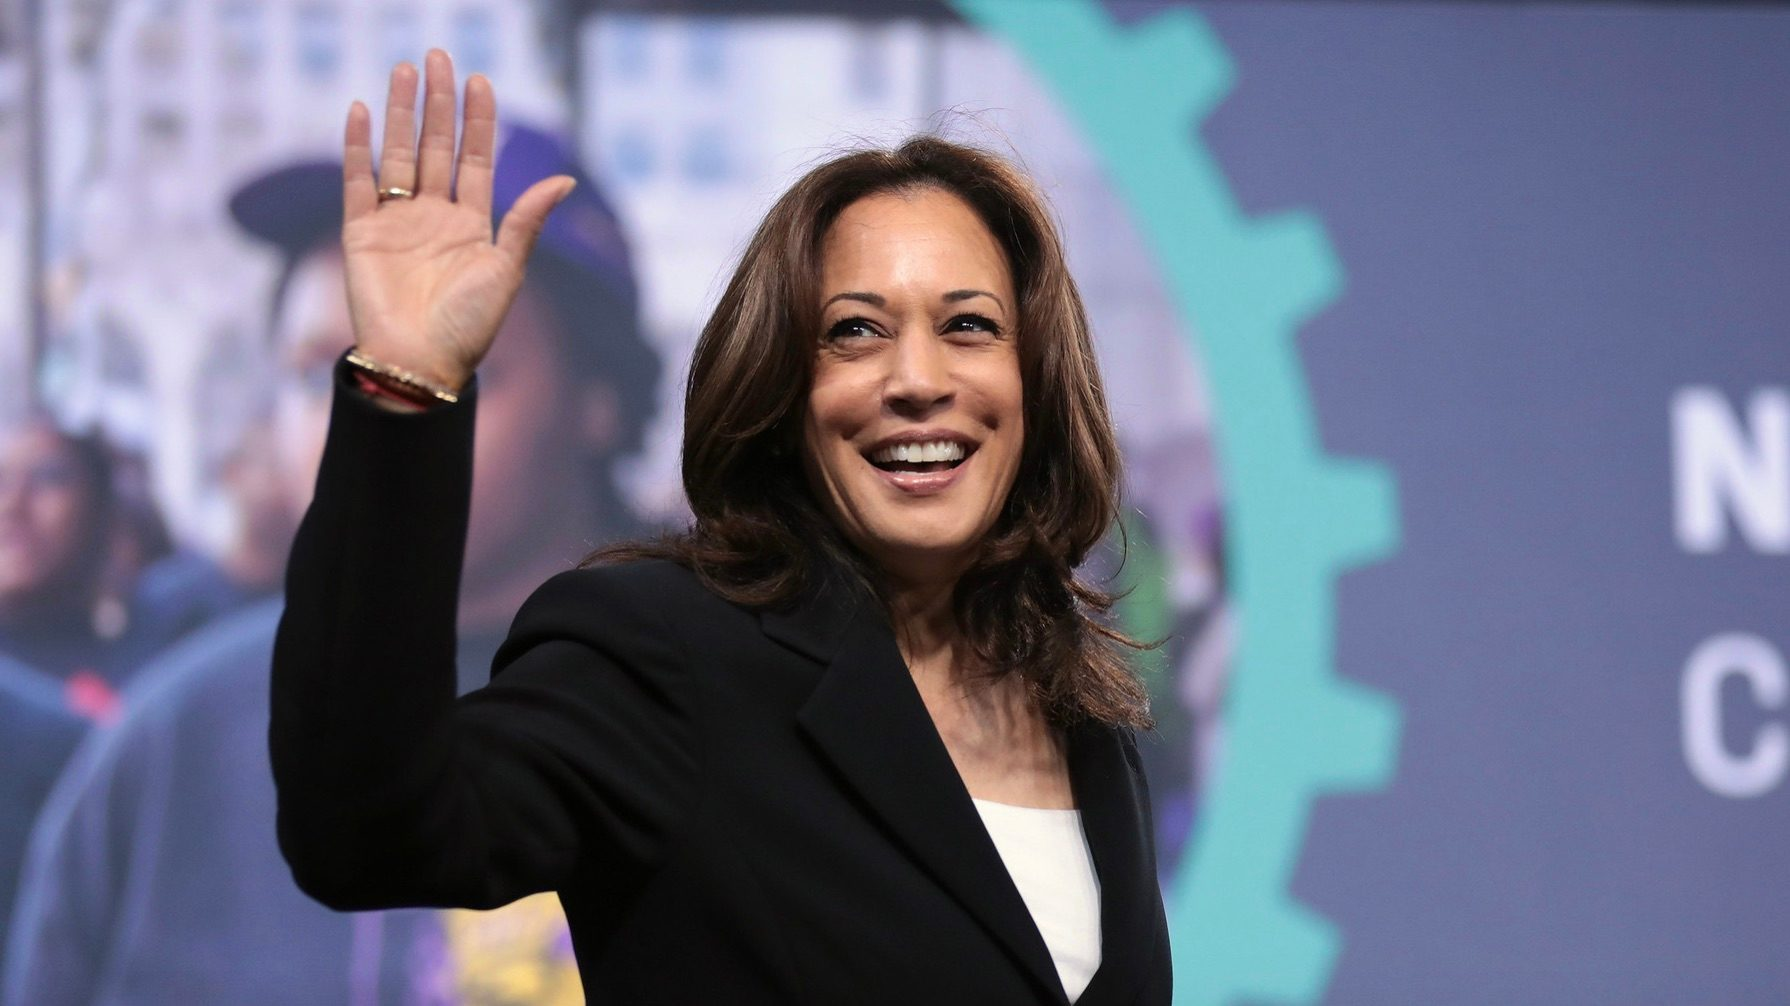 Did Kamala Harris Have An Extramarital Affair With Willie Brown That Boosted Her Career